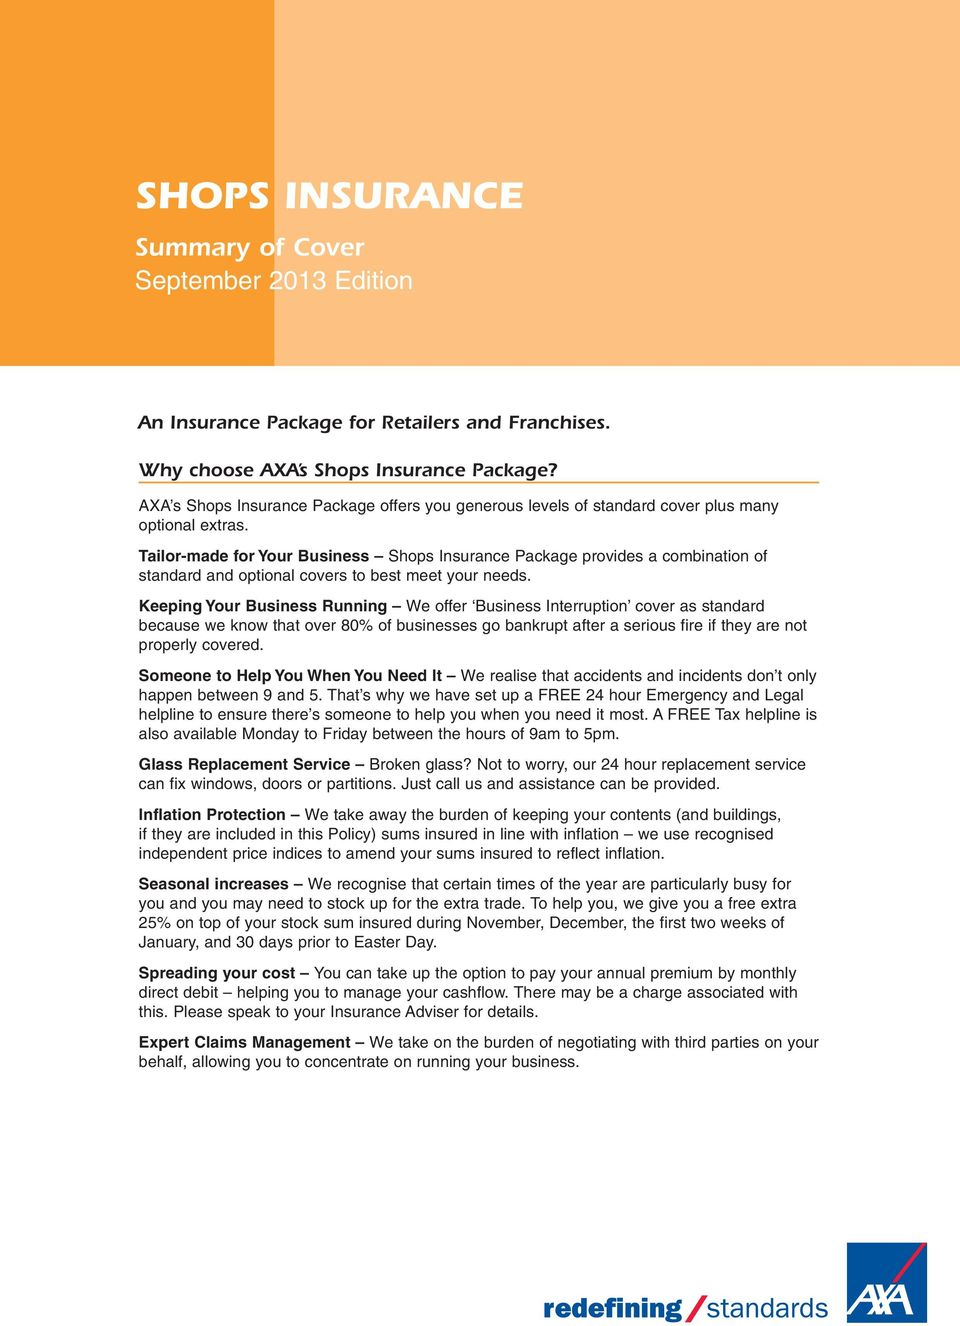 Tailor-made for Your Business Shops Insurance Package provides a combination of standard and optional covers to best meet your needs.